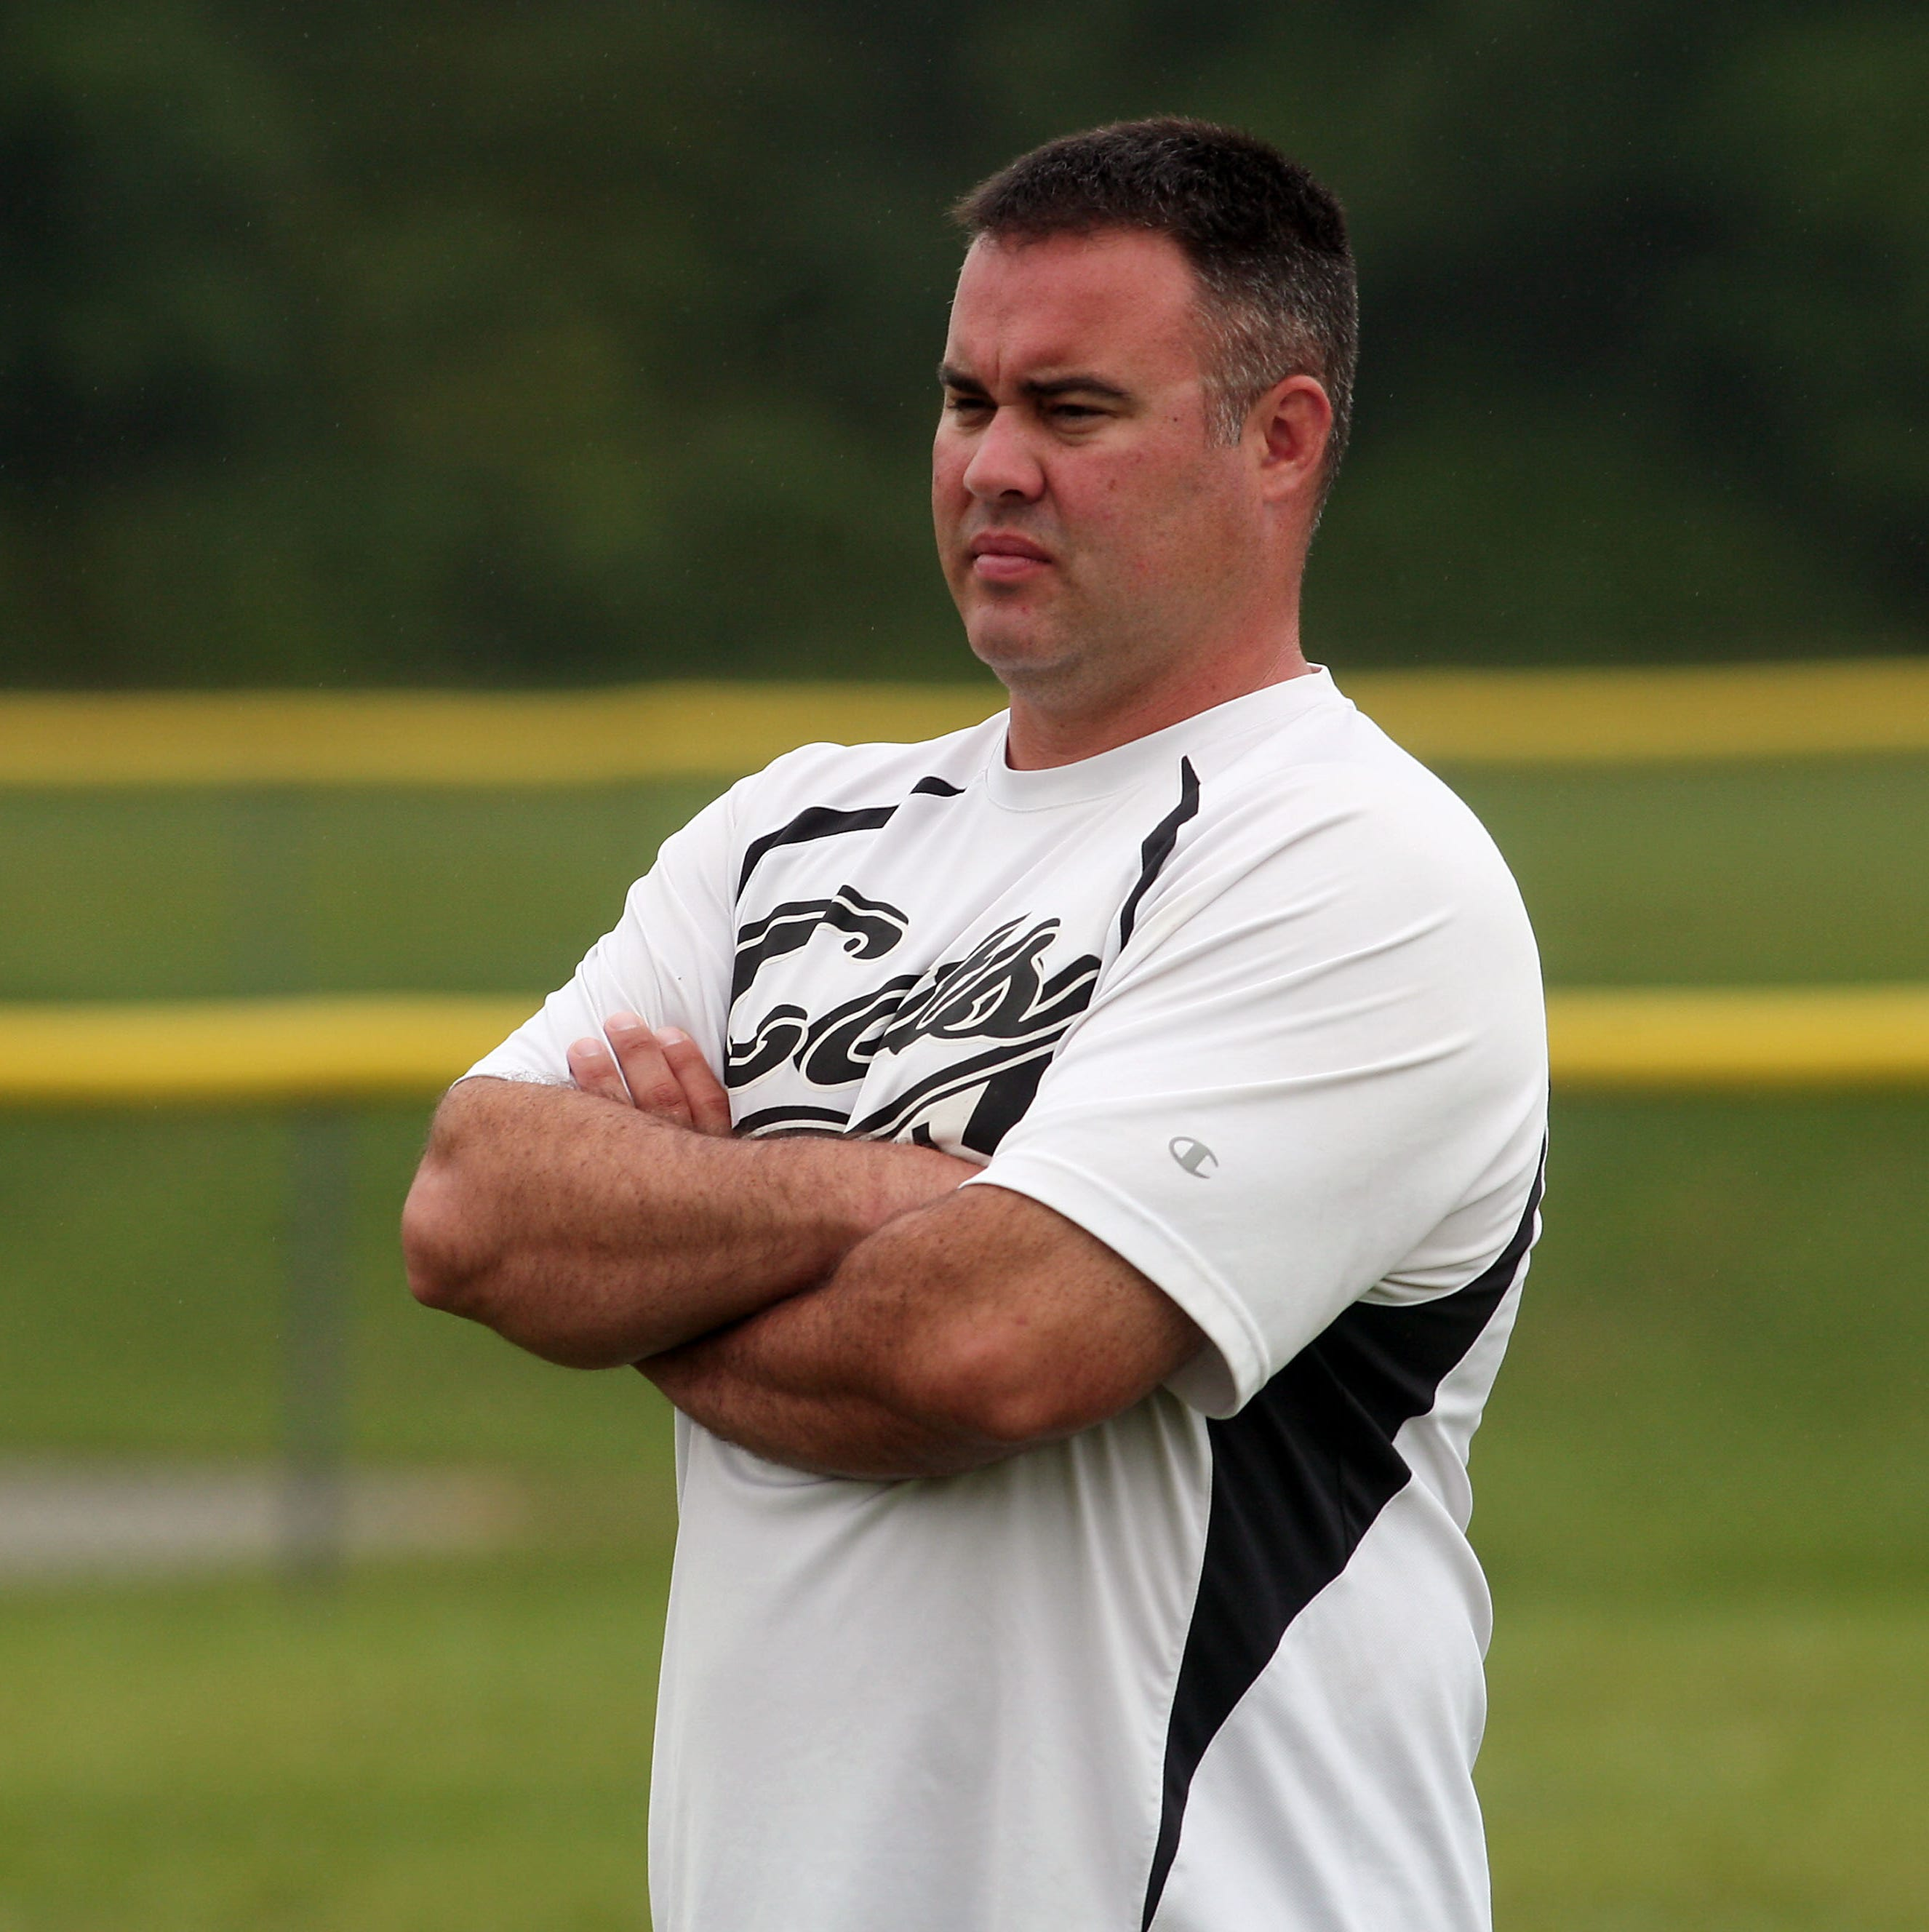 Whippany Park softball delivers milestone, trophy to head coach Todd Callaghan